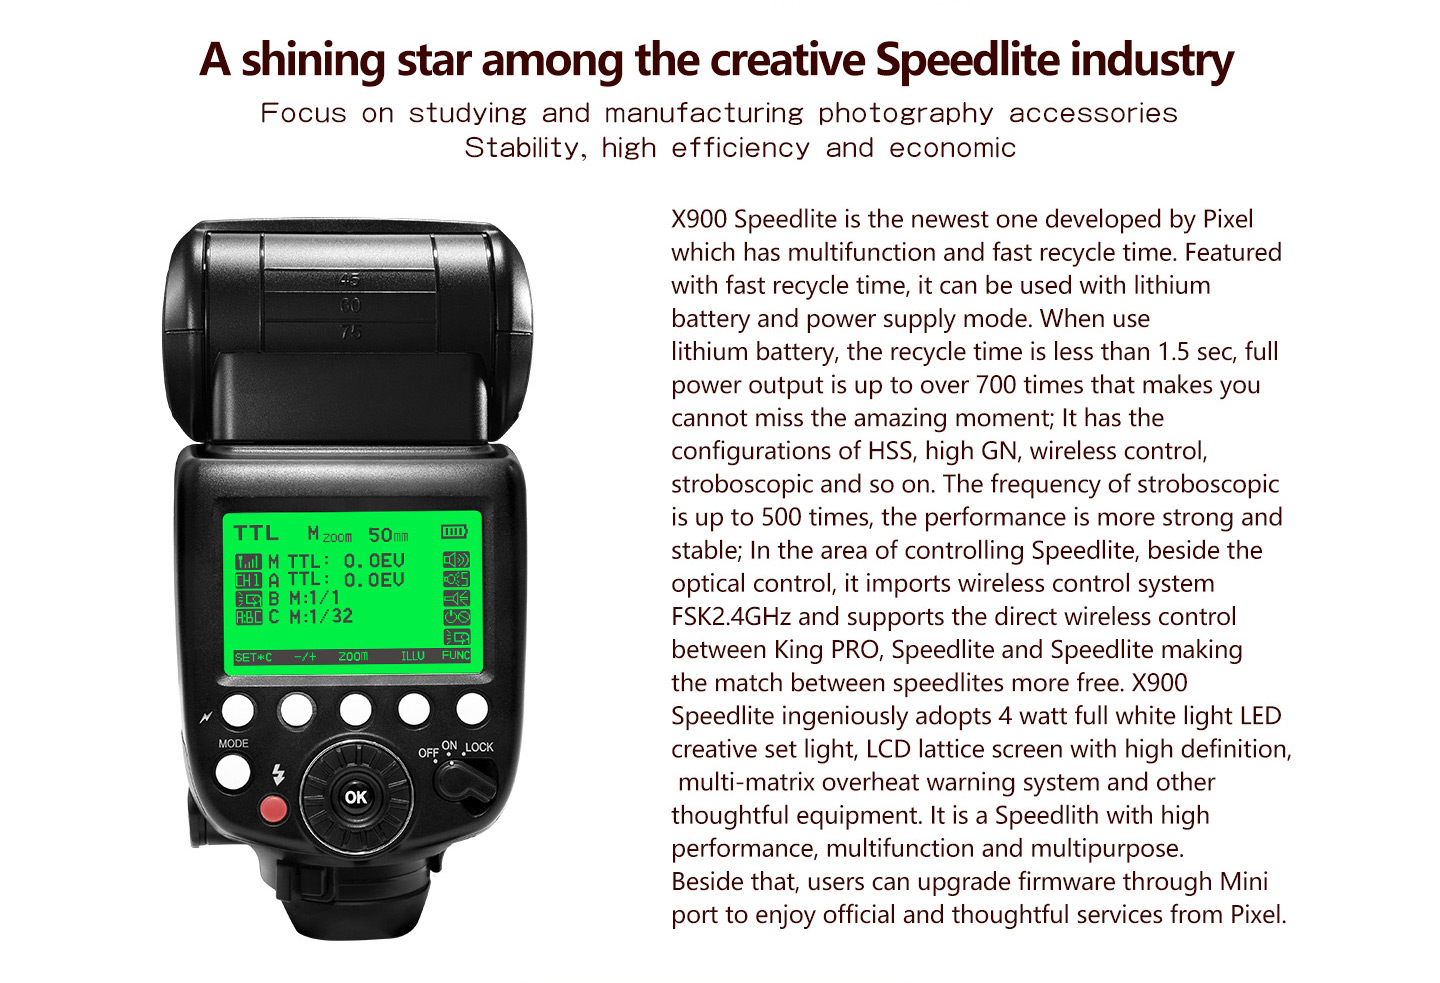 A shining star among the creative Speedlite industry